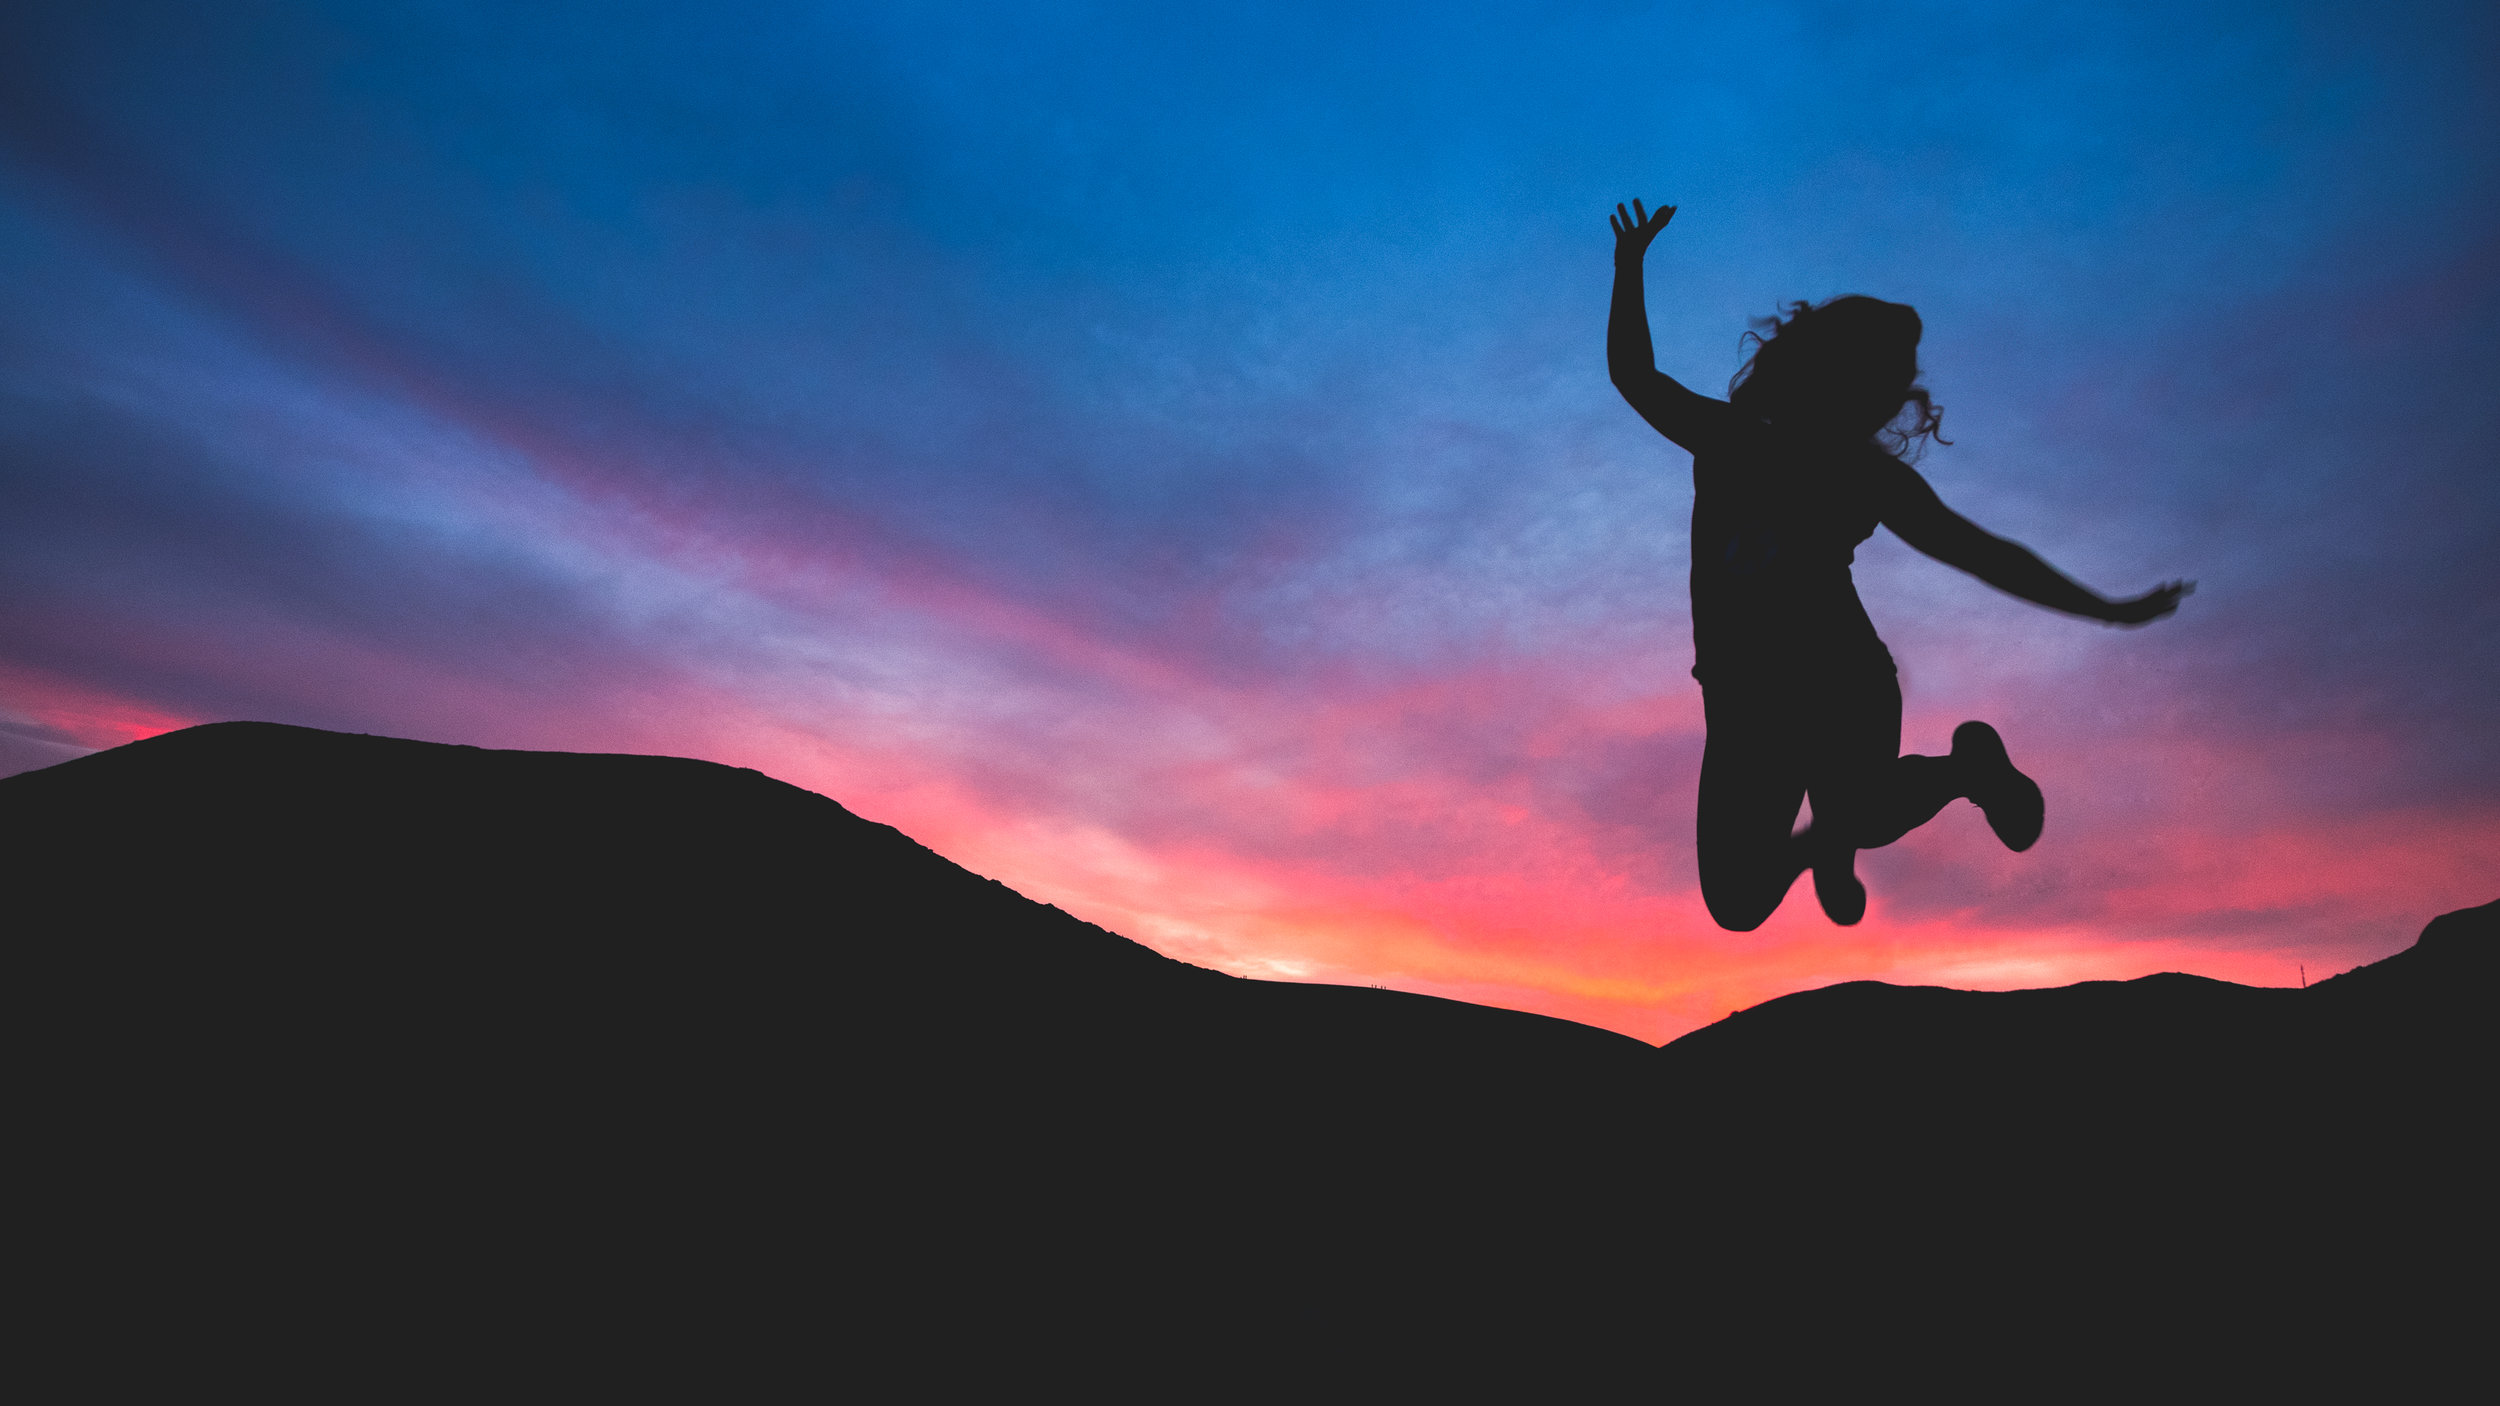 Woman jumping for joy. depression therapy charlotte, nc